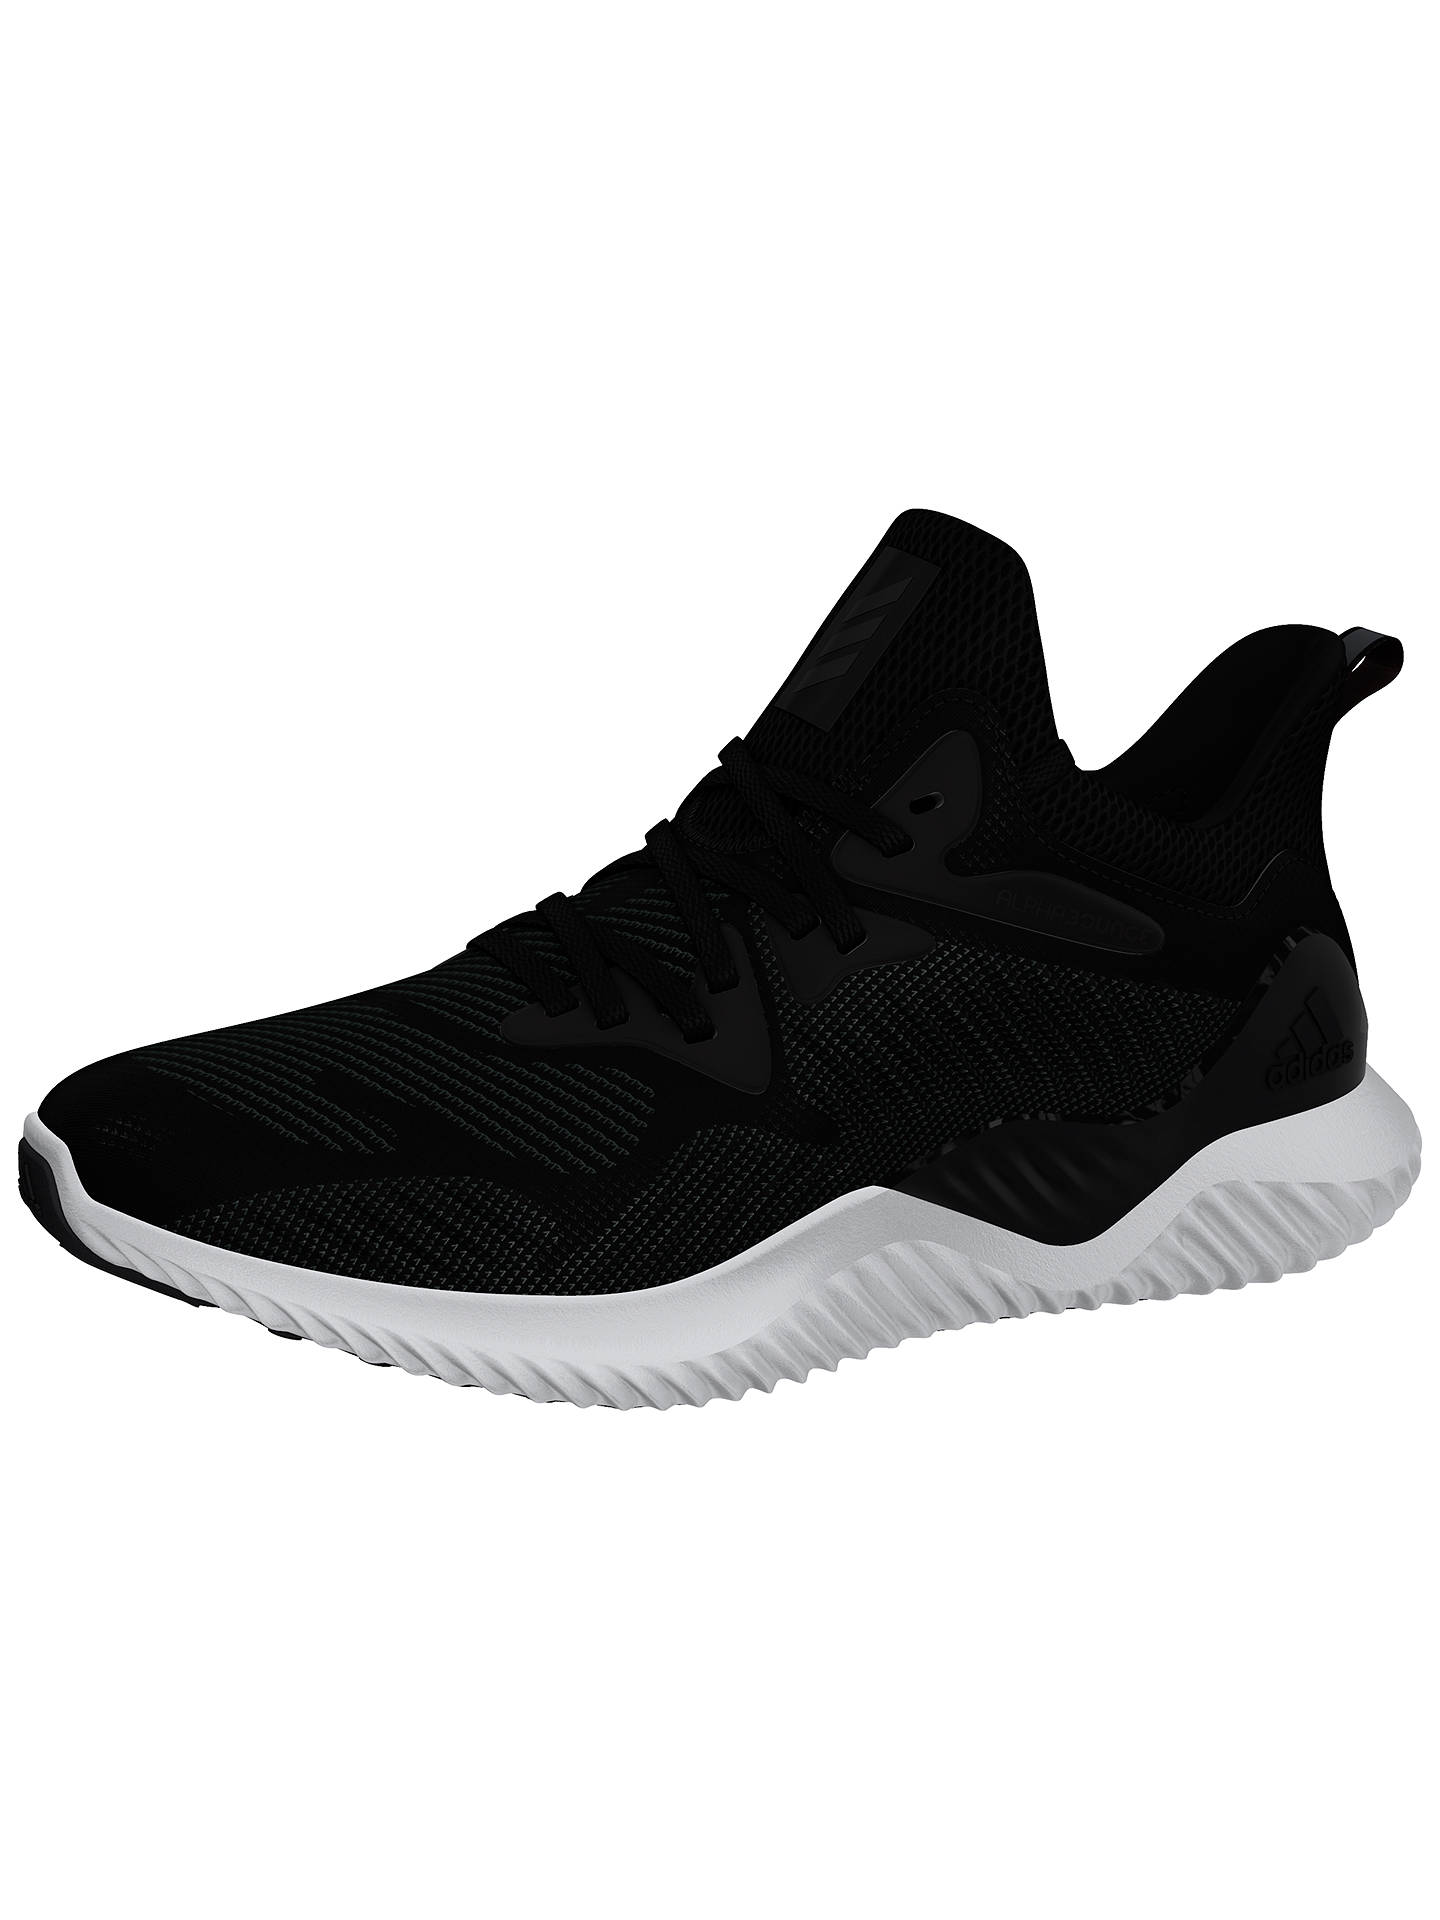 ... Buyadidas Alphabounce Beyond Womens Running Shoes, Core Black, 4  Online at johnlewis. ...